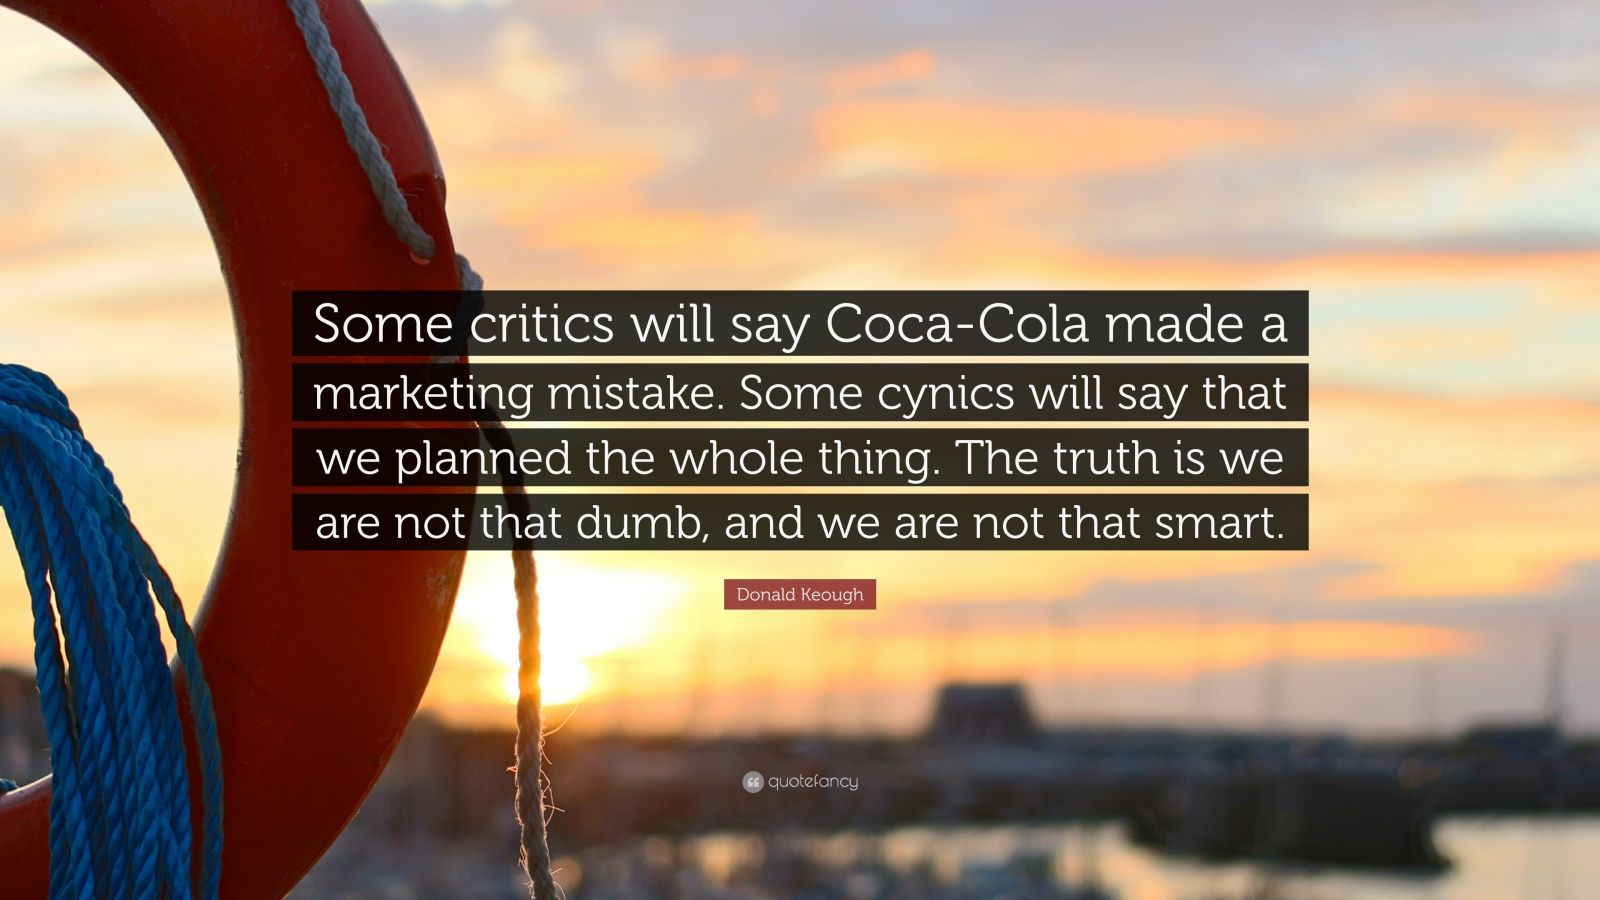 """Donald Keough Quote: """"Some critics will say Coca-Cola made a marketing mistake. Some cynics will say that we planned the whole thing. The truth is we are not that dumb, and we are not that smart."""""""